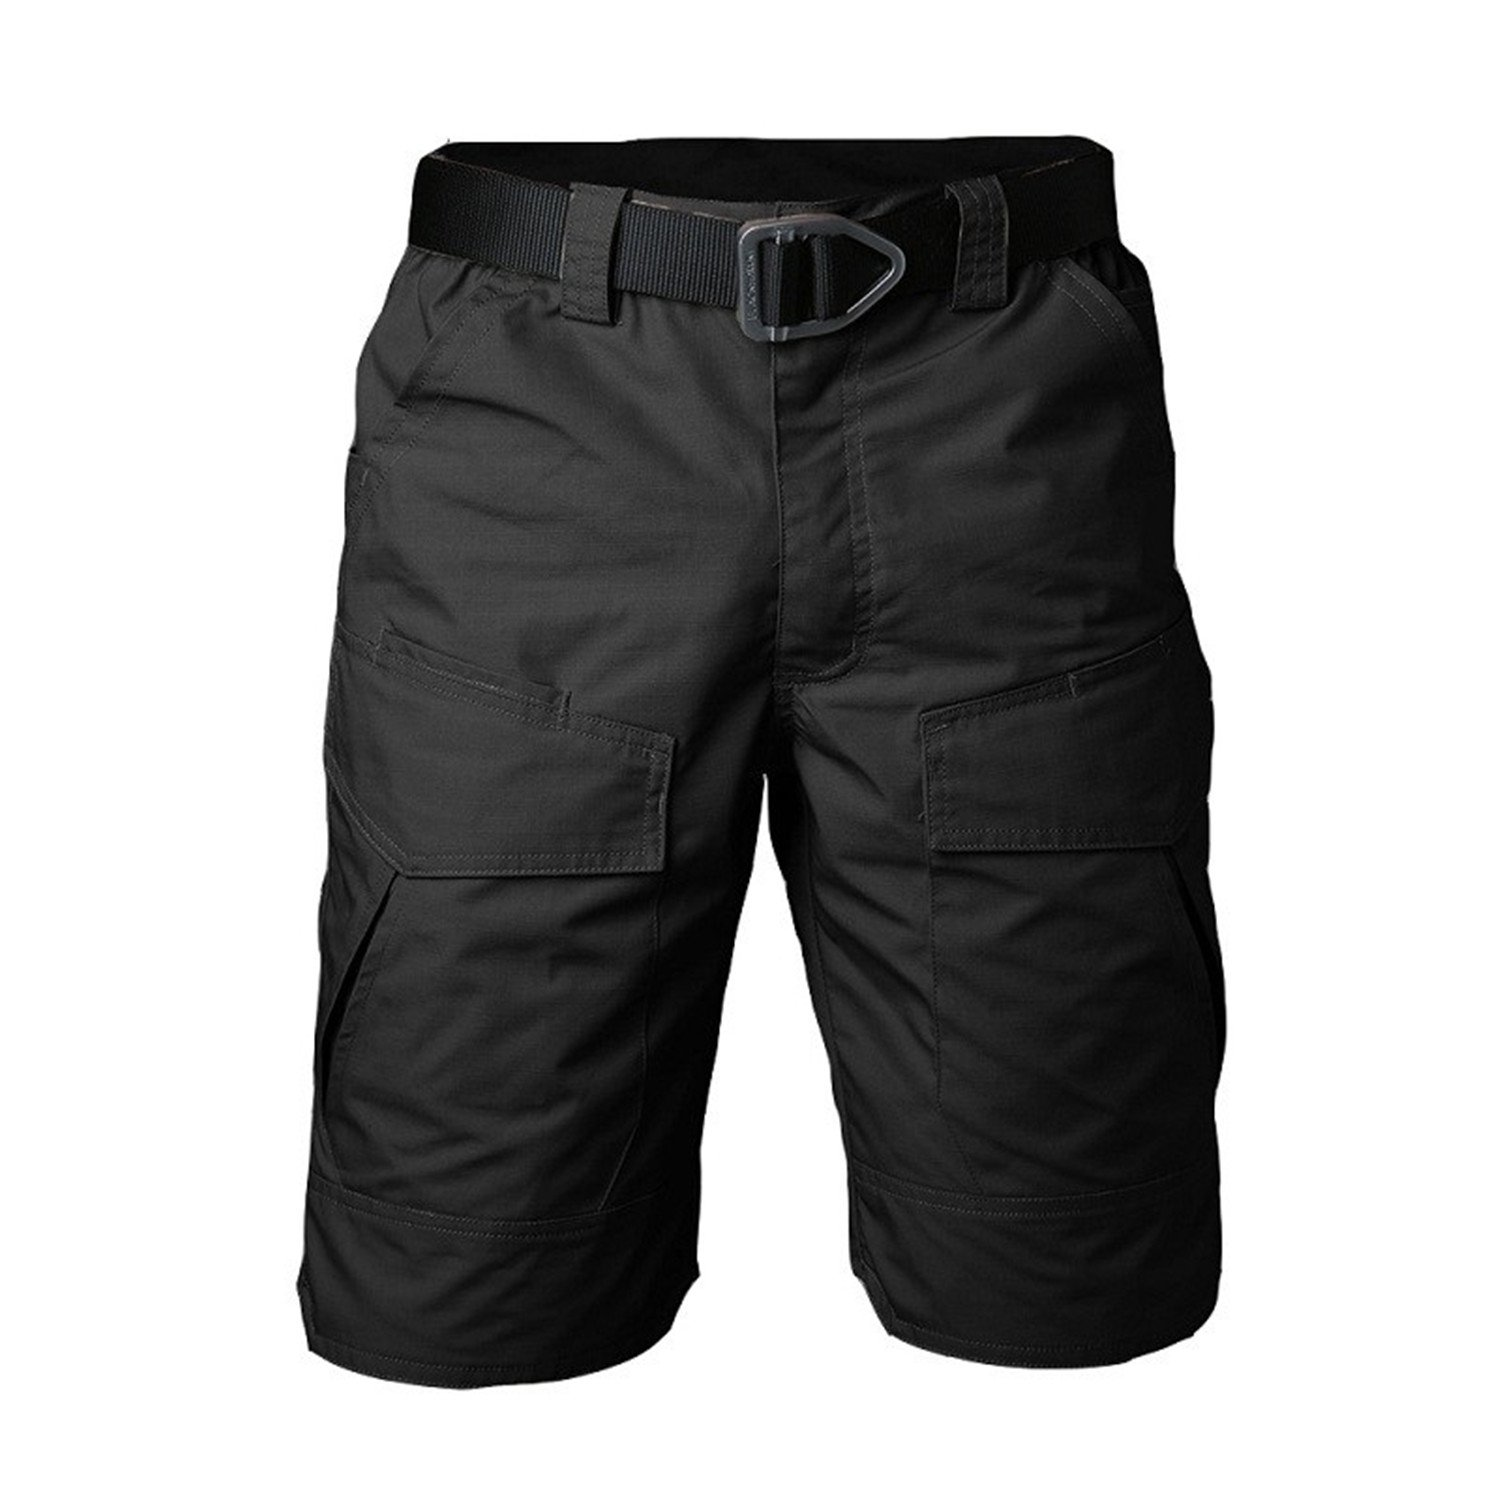 Henraly Summer Militar Waterproof Tactical Cargo Shorts Men Teflon Camouflage Army Military Motion Men Casual Hike Shorts Black XXL